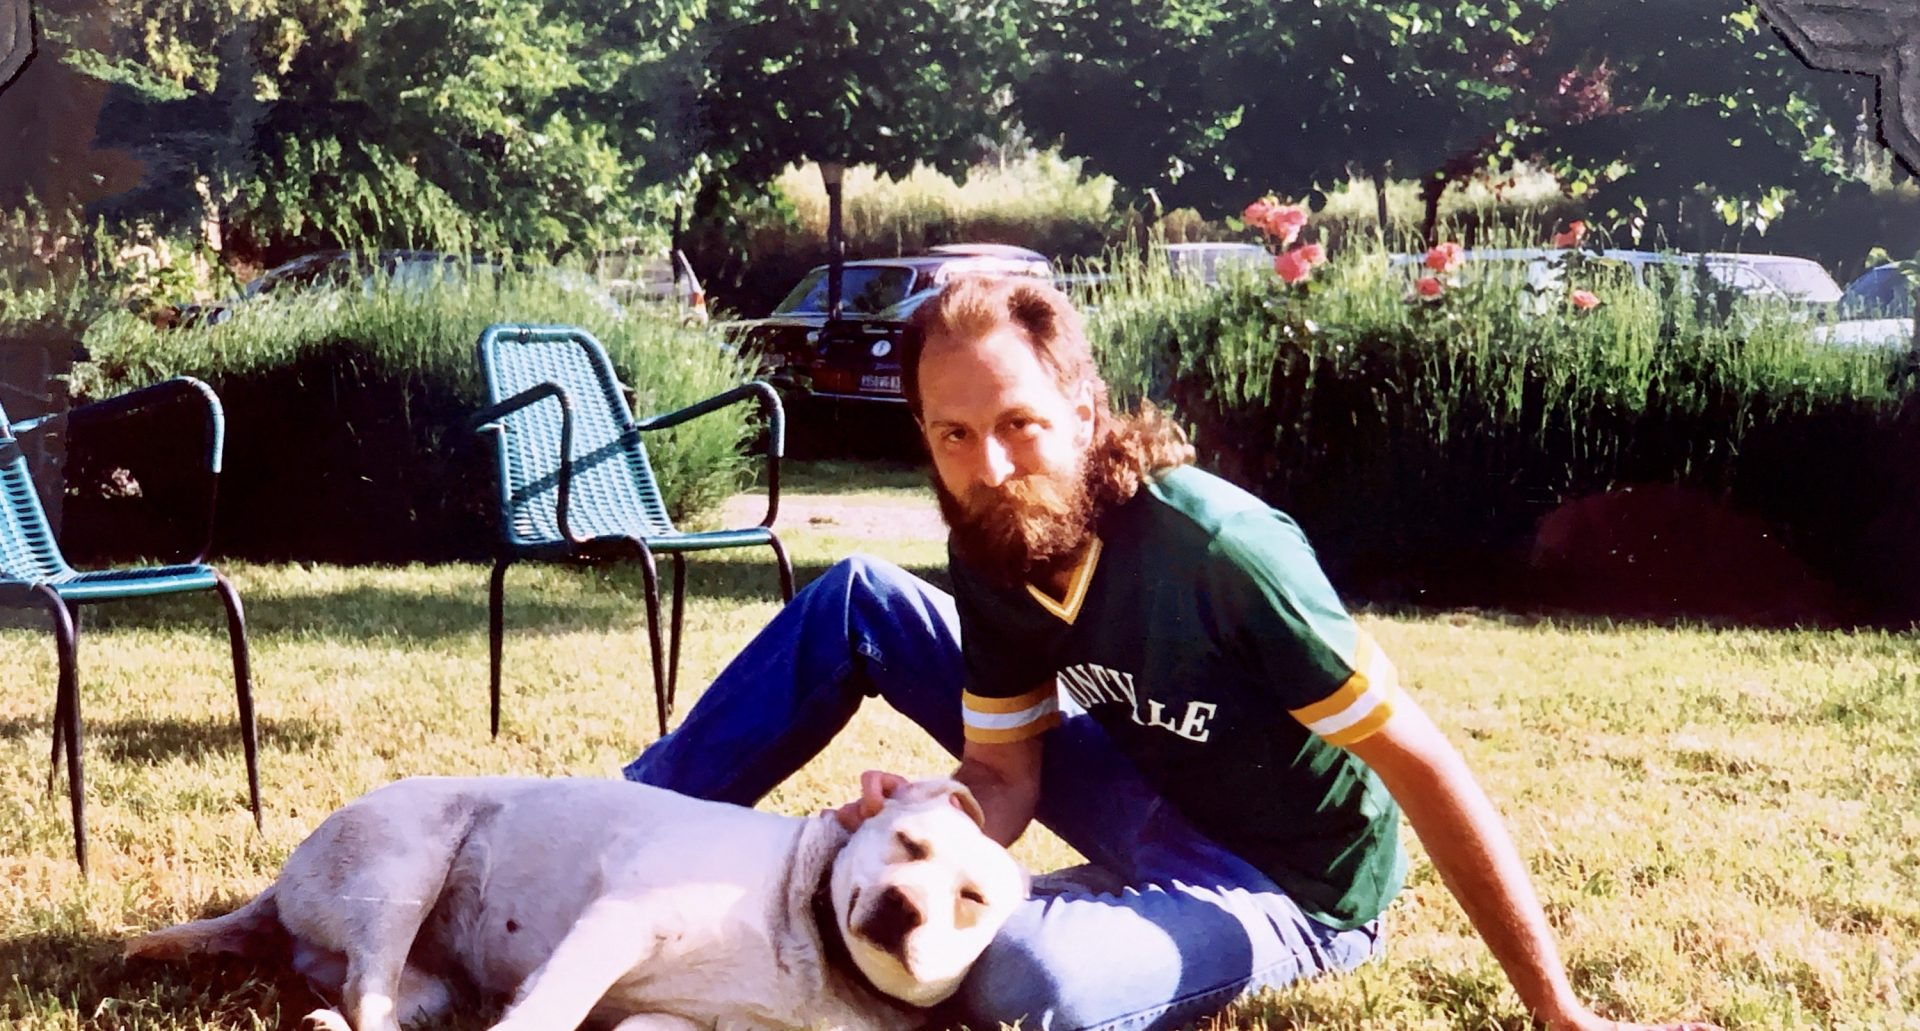 Dave loved dogs, even on our honeymoon in Italy